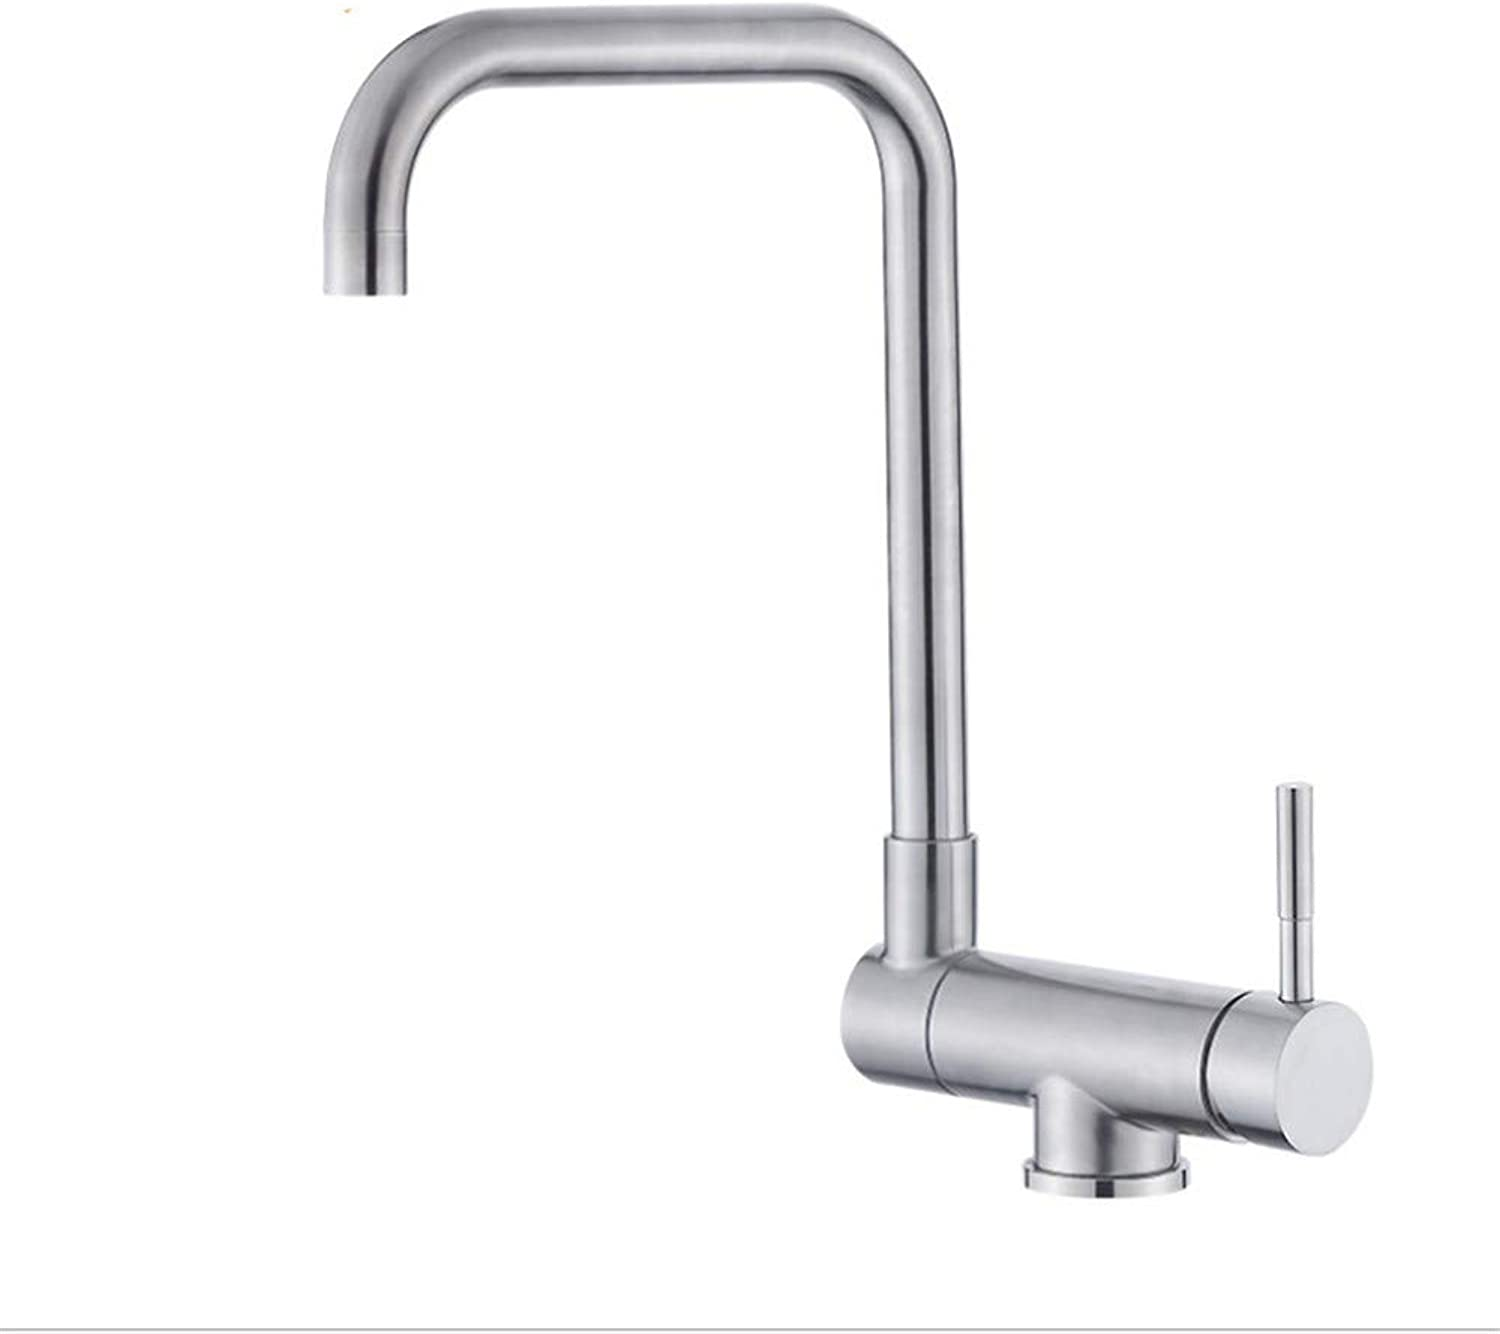 Basin Faucet304 Stainless Steel Kitchen Washing Pot Hot and Cold Faucet 360 Degree